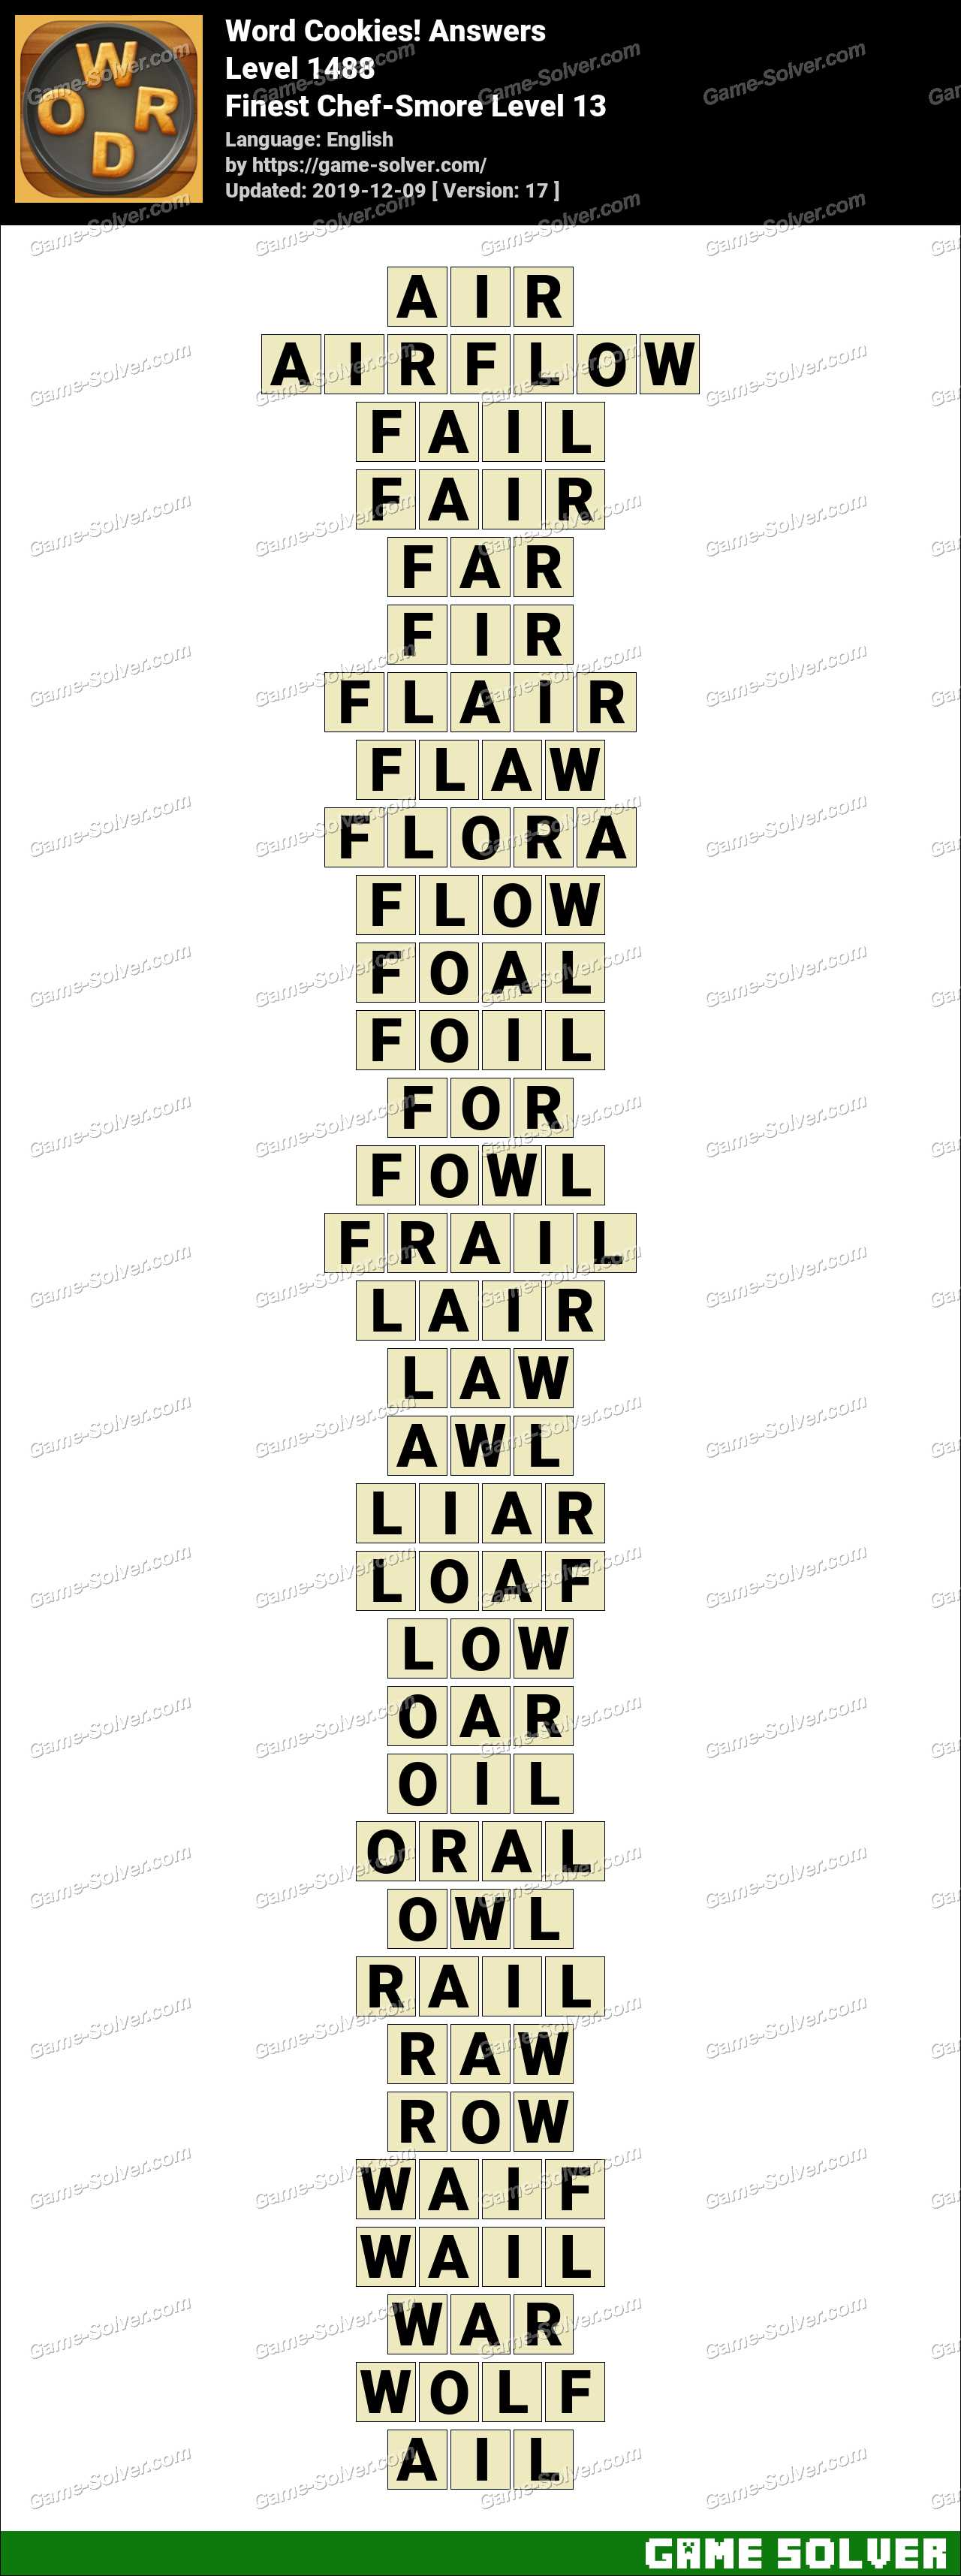 Word Cookies Finest Chef-Smore Level 13 Answers